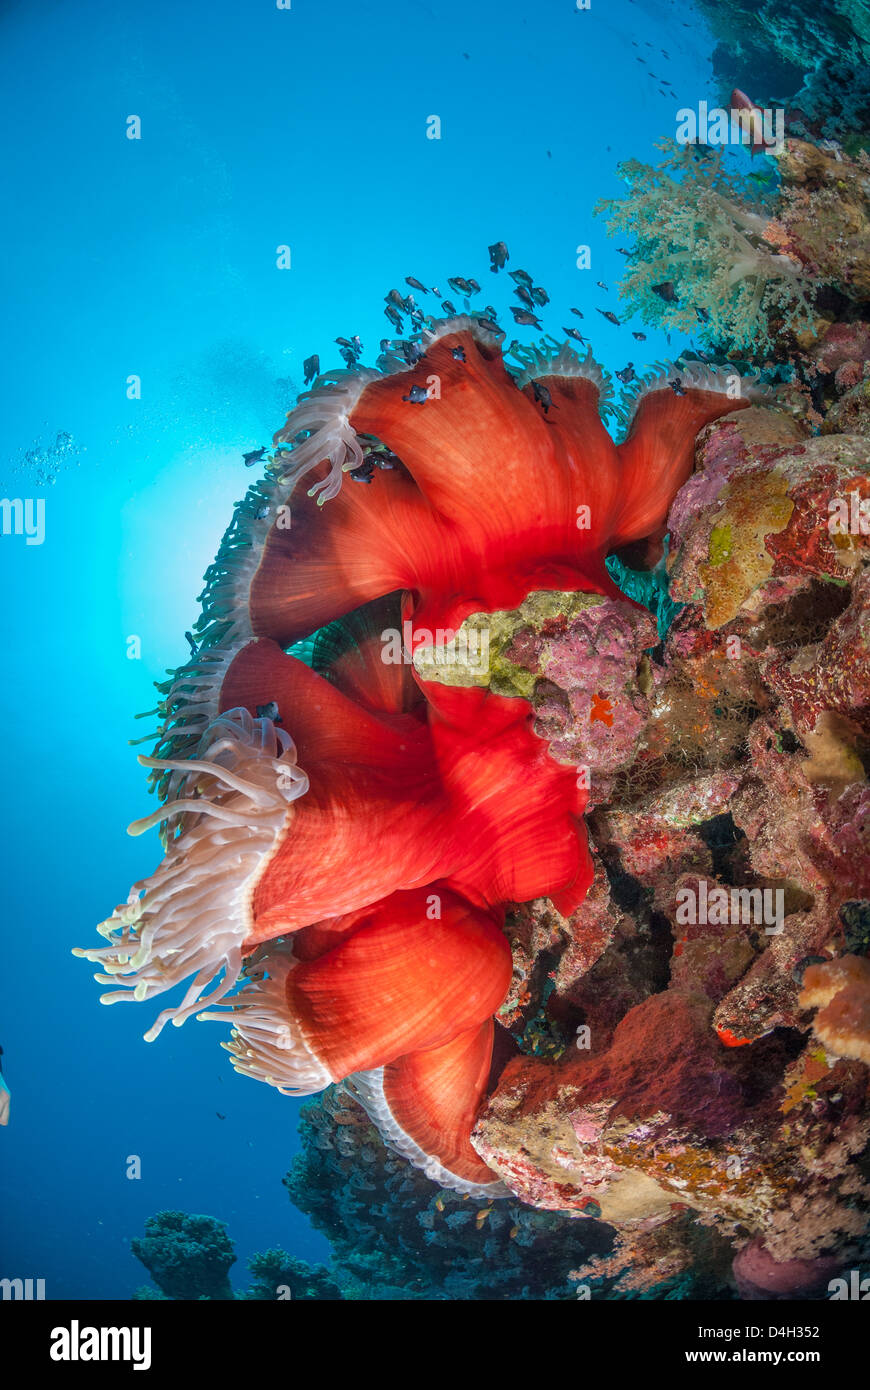 Magnificent anemone, Ras Mohammed National Park, Sinai, Egypt, Red Sea, Egypt, North Africa - Stock Image